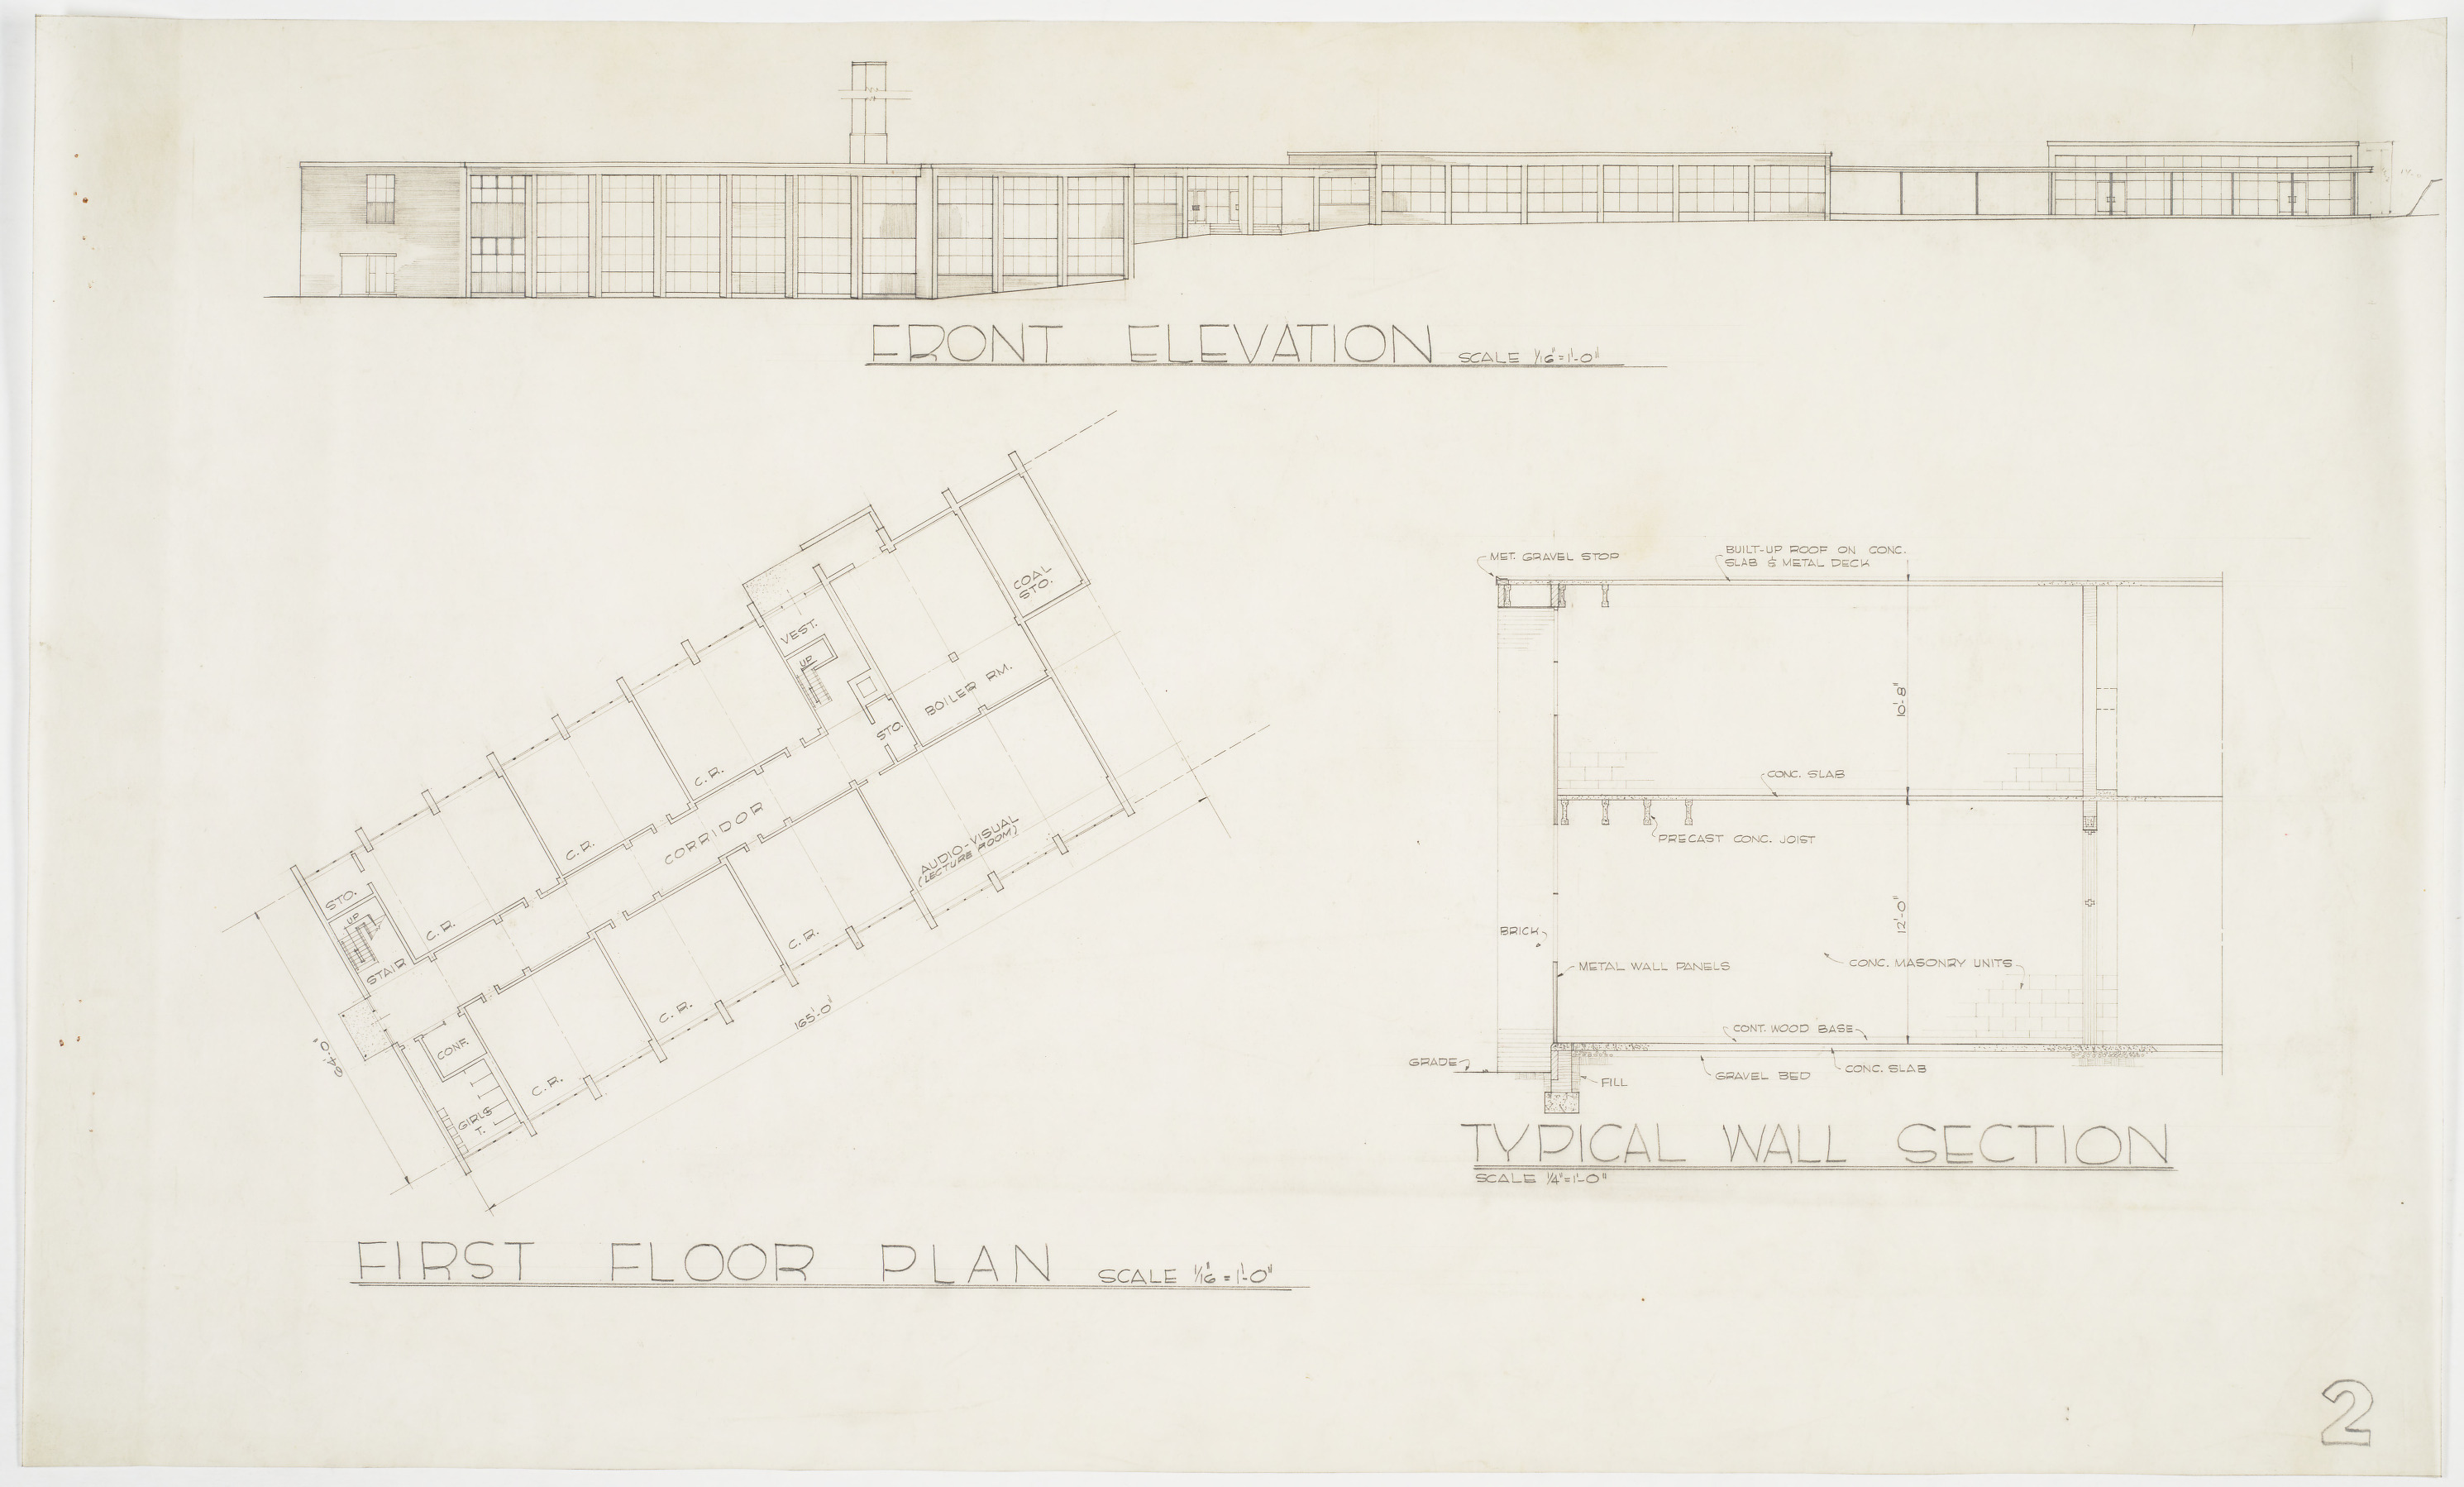 First Floor Plan Front Elevation Typical Wall Section